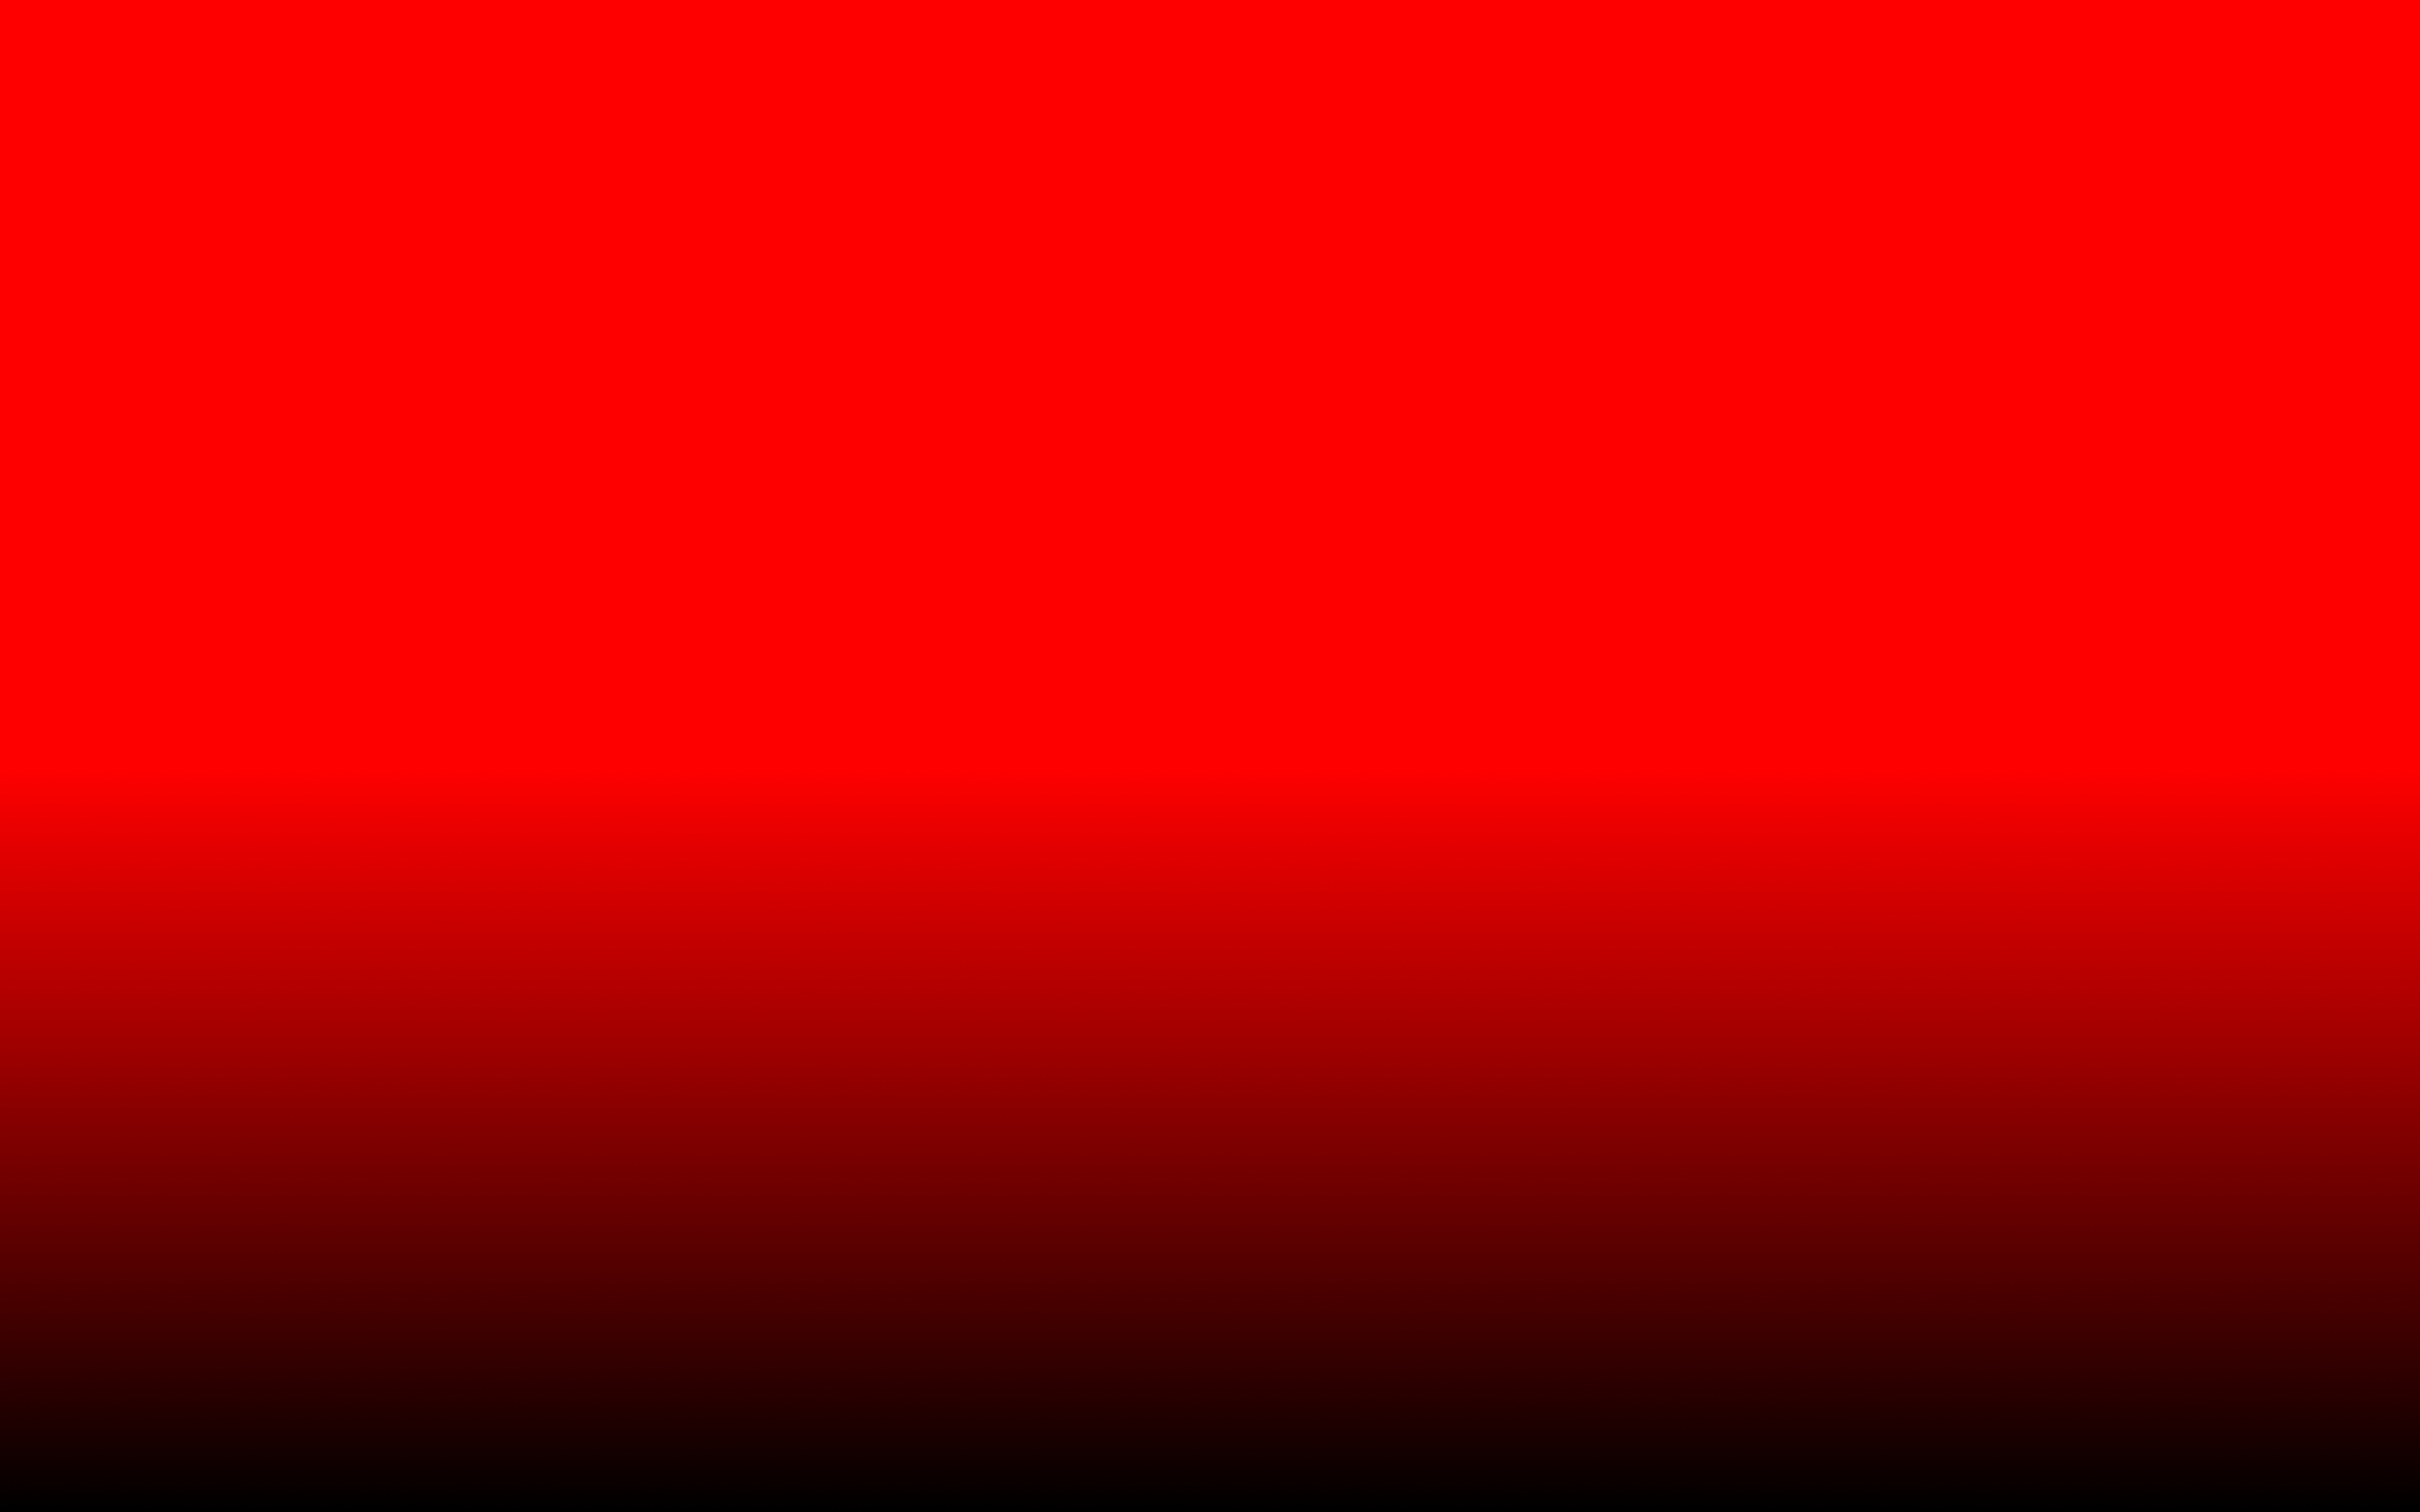 Red Gradient Black Gradient Hd Red Wallpaper Colours